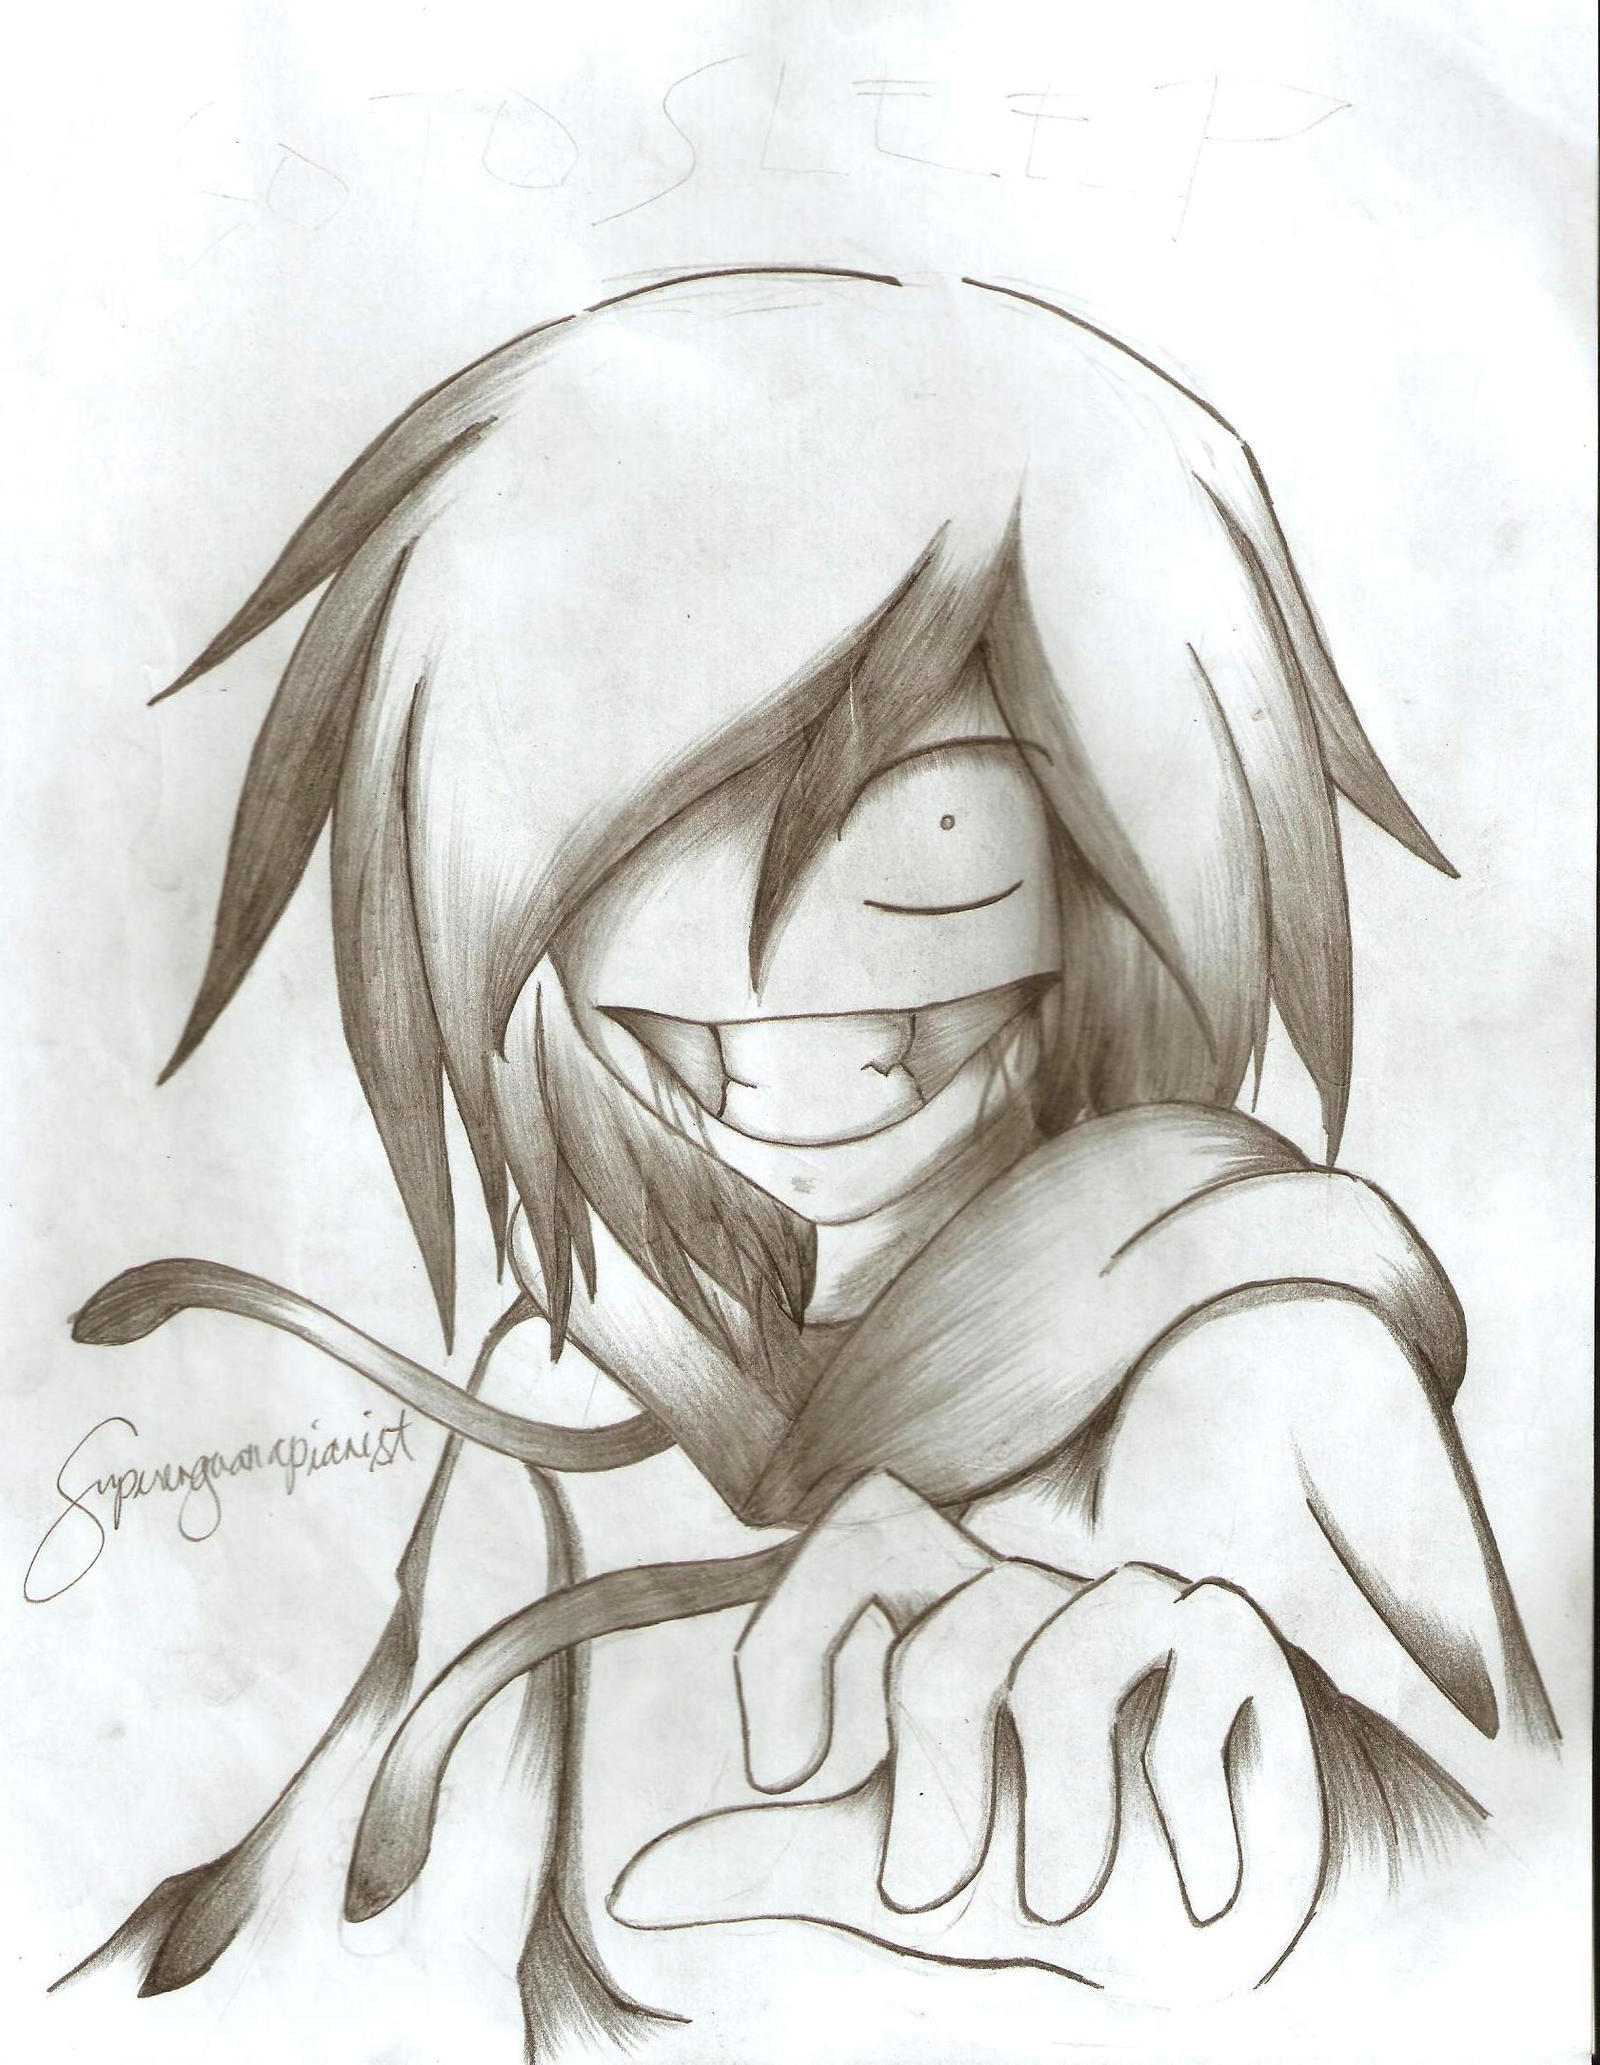 JEFF THE KILLER by superenguanapianist